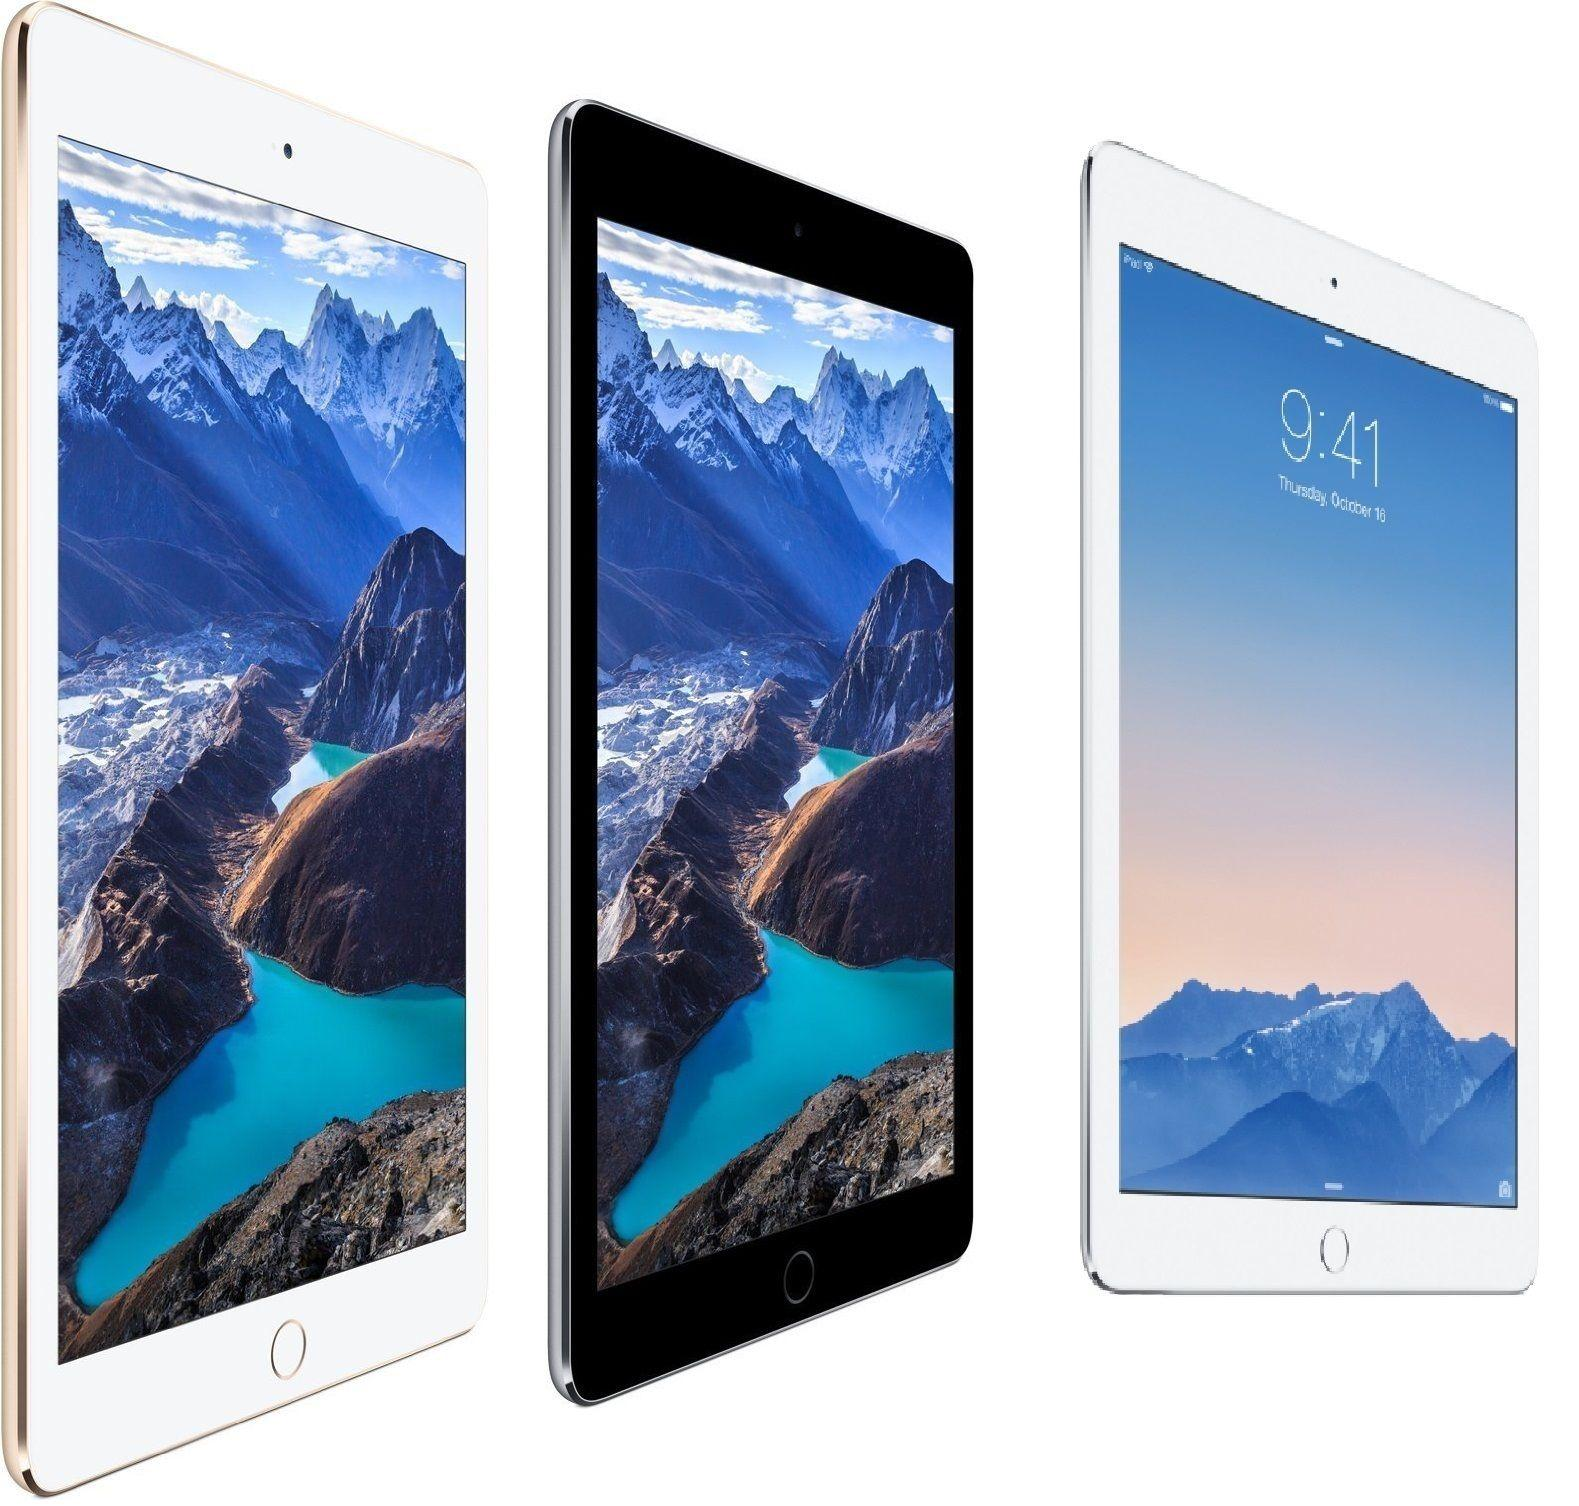 $100 off Apple iPad Air 2 with WiFi @ Staples